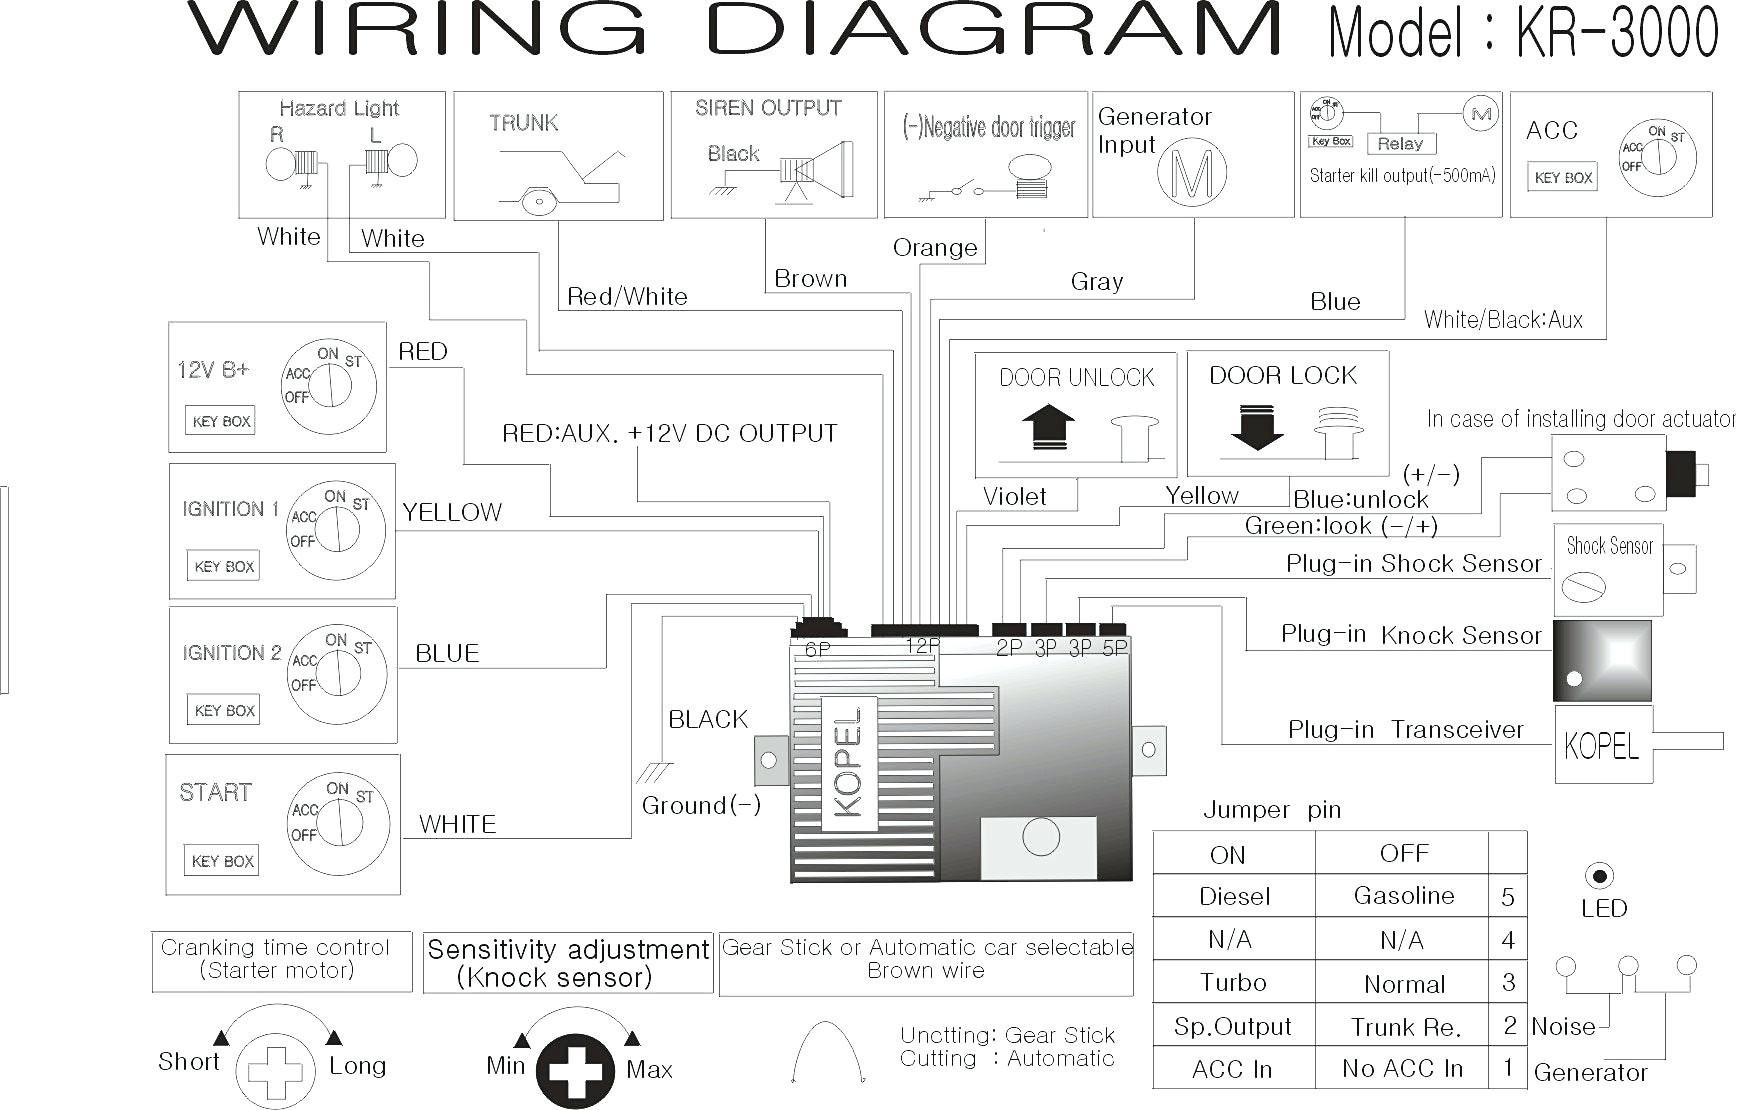 Pioneer Avh-280bt Wiring Diagram | Free Wiring Diagram on toyota stereo wiring diagram, 2003 ford ranger wiring diagram, jvc car stereo wiring diagram, 2003 suzuki gsxr 600 wiring diagram, wiring pin diagram, fuel pump diagram, x18 pocket bike wiring diagram, wiring kit diagram, solenoid diagram, instruction manual diagram, switch diagram, 1930 ford model a wiring diagram, fuse diagram, wheels diagram, transmission diagram, wiring starter diagram, radio wiring diagram, wiring horn diagram, wiring schematics, relay diagram,